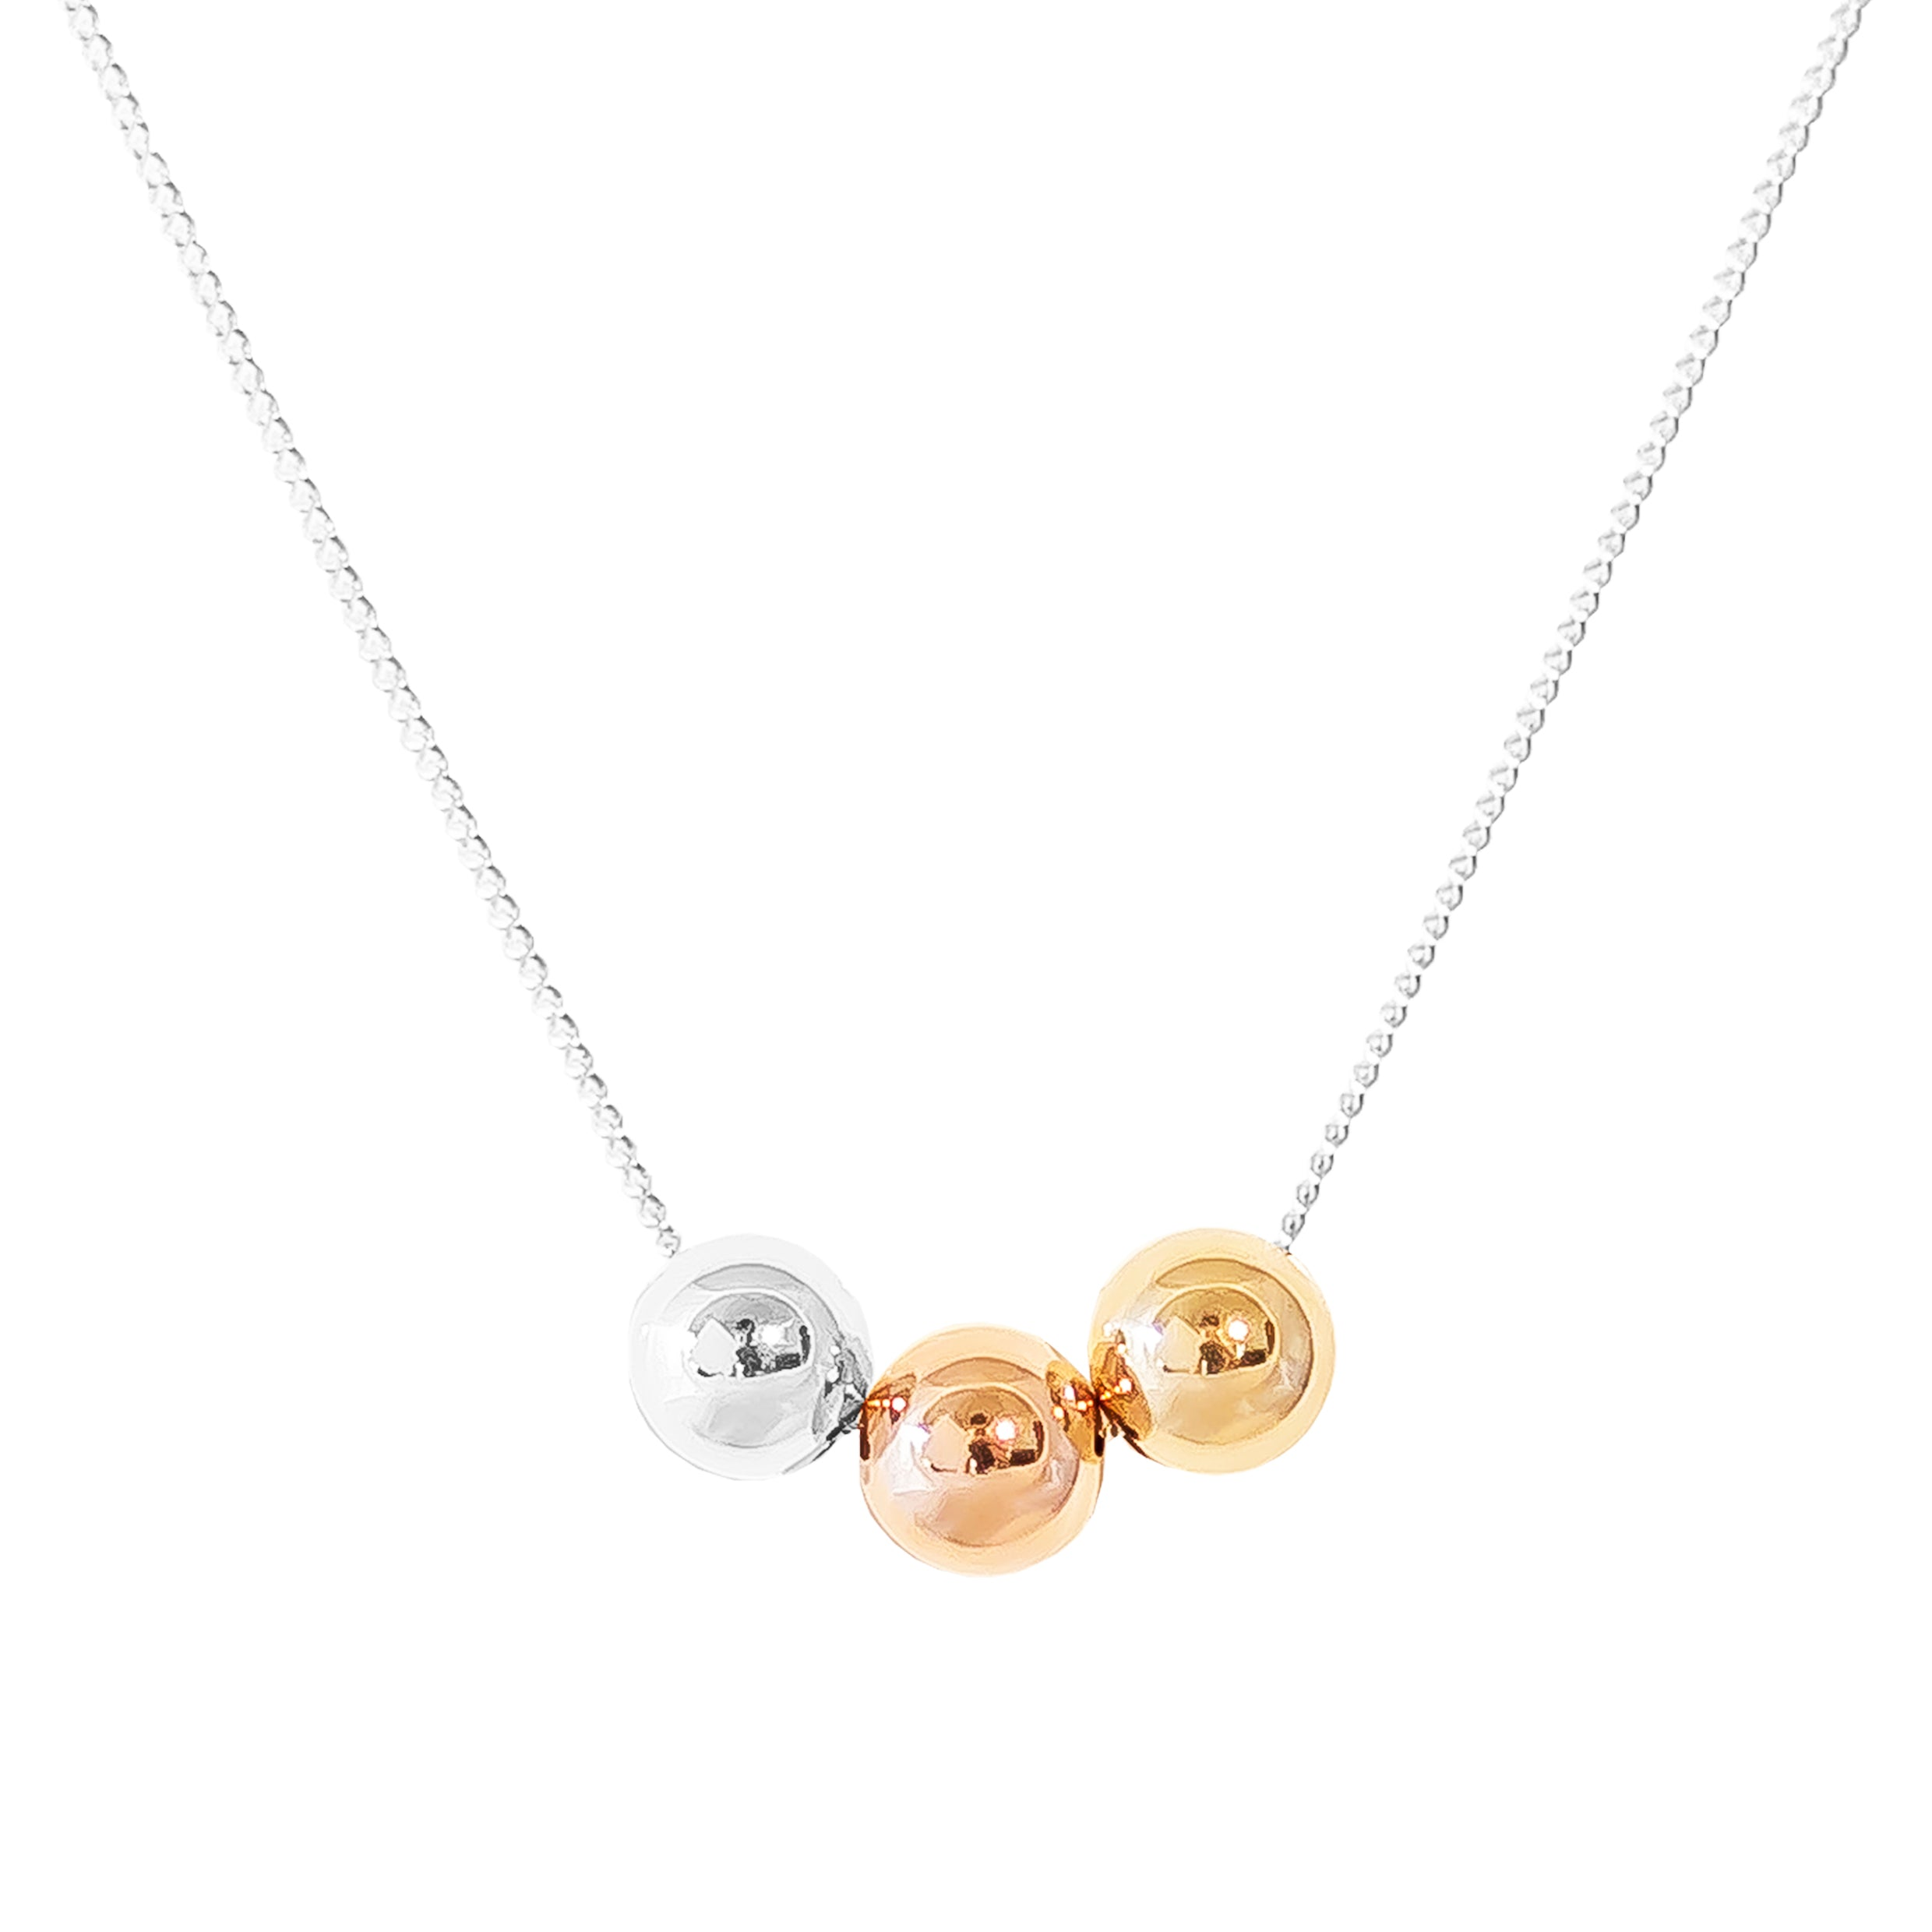 Billy Medium Tri Necklace | Polished Tri Detail